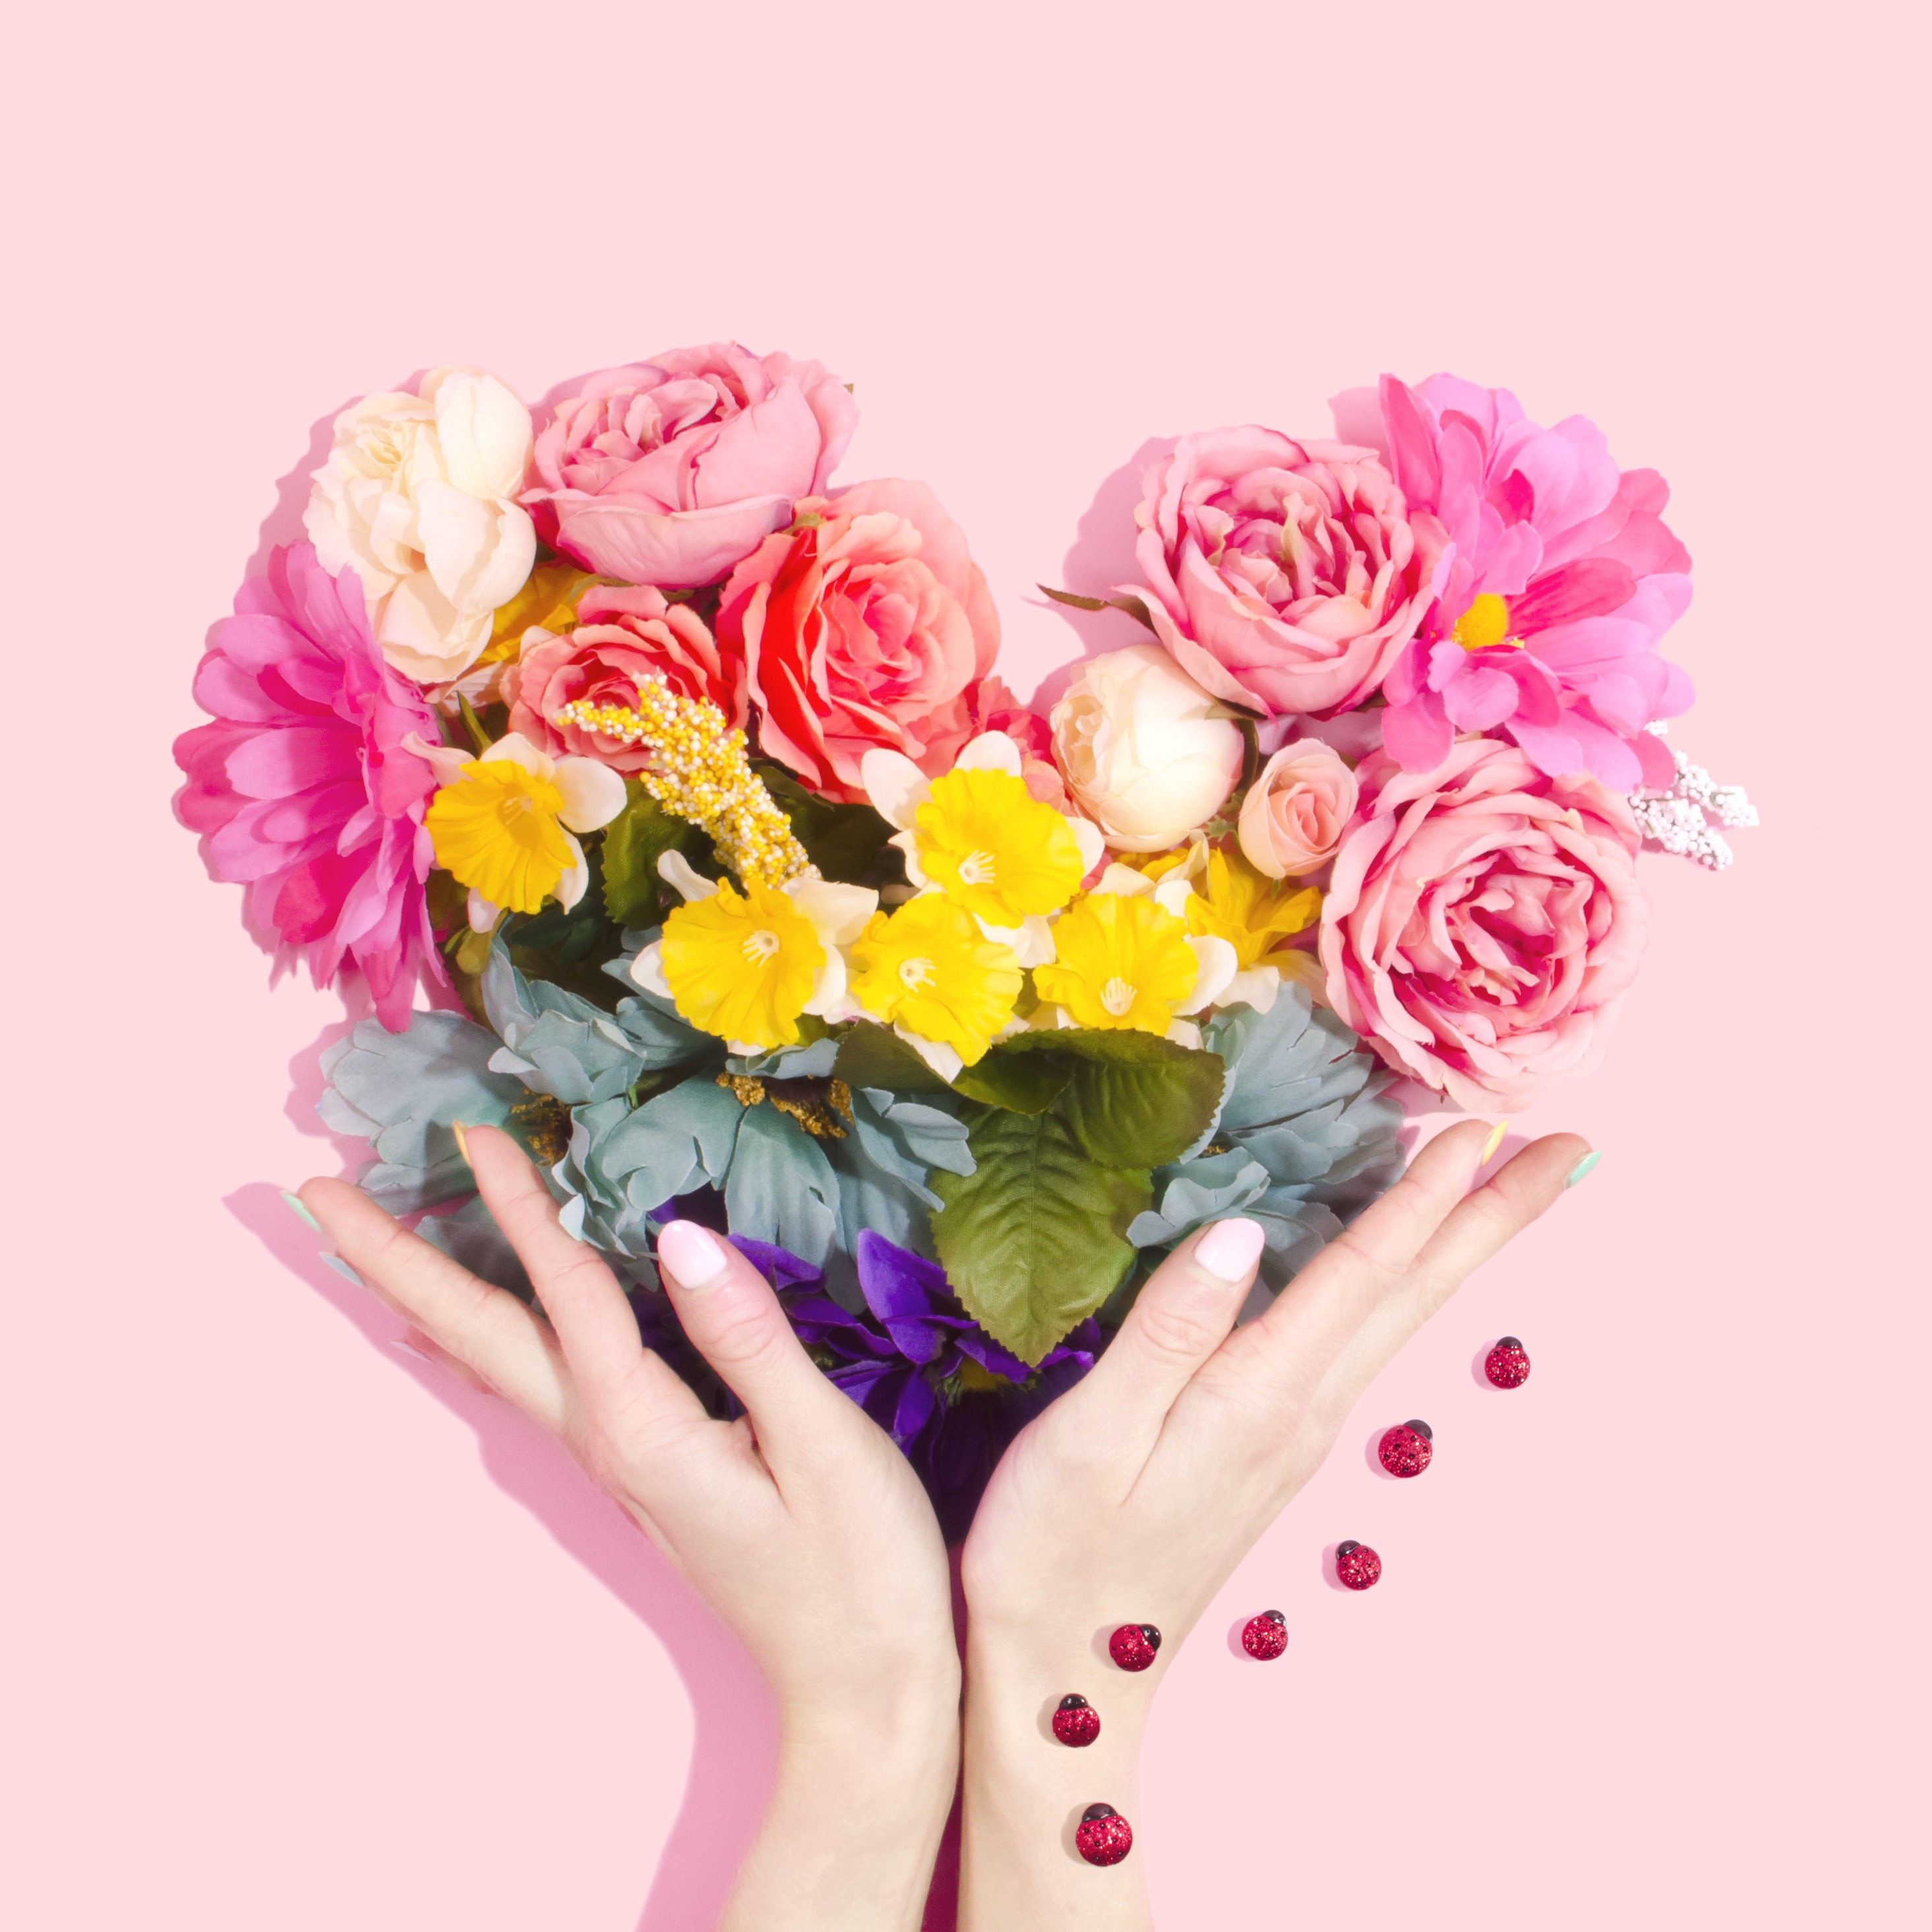 Hands holding flowers in the shape of a heart